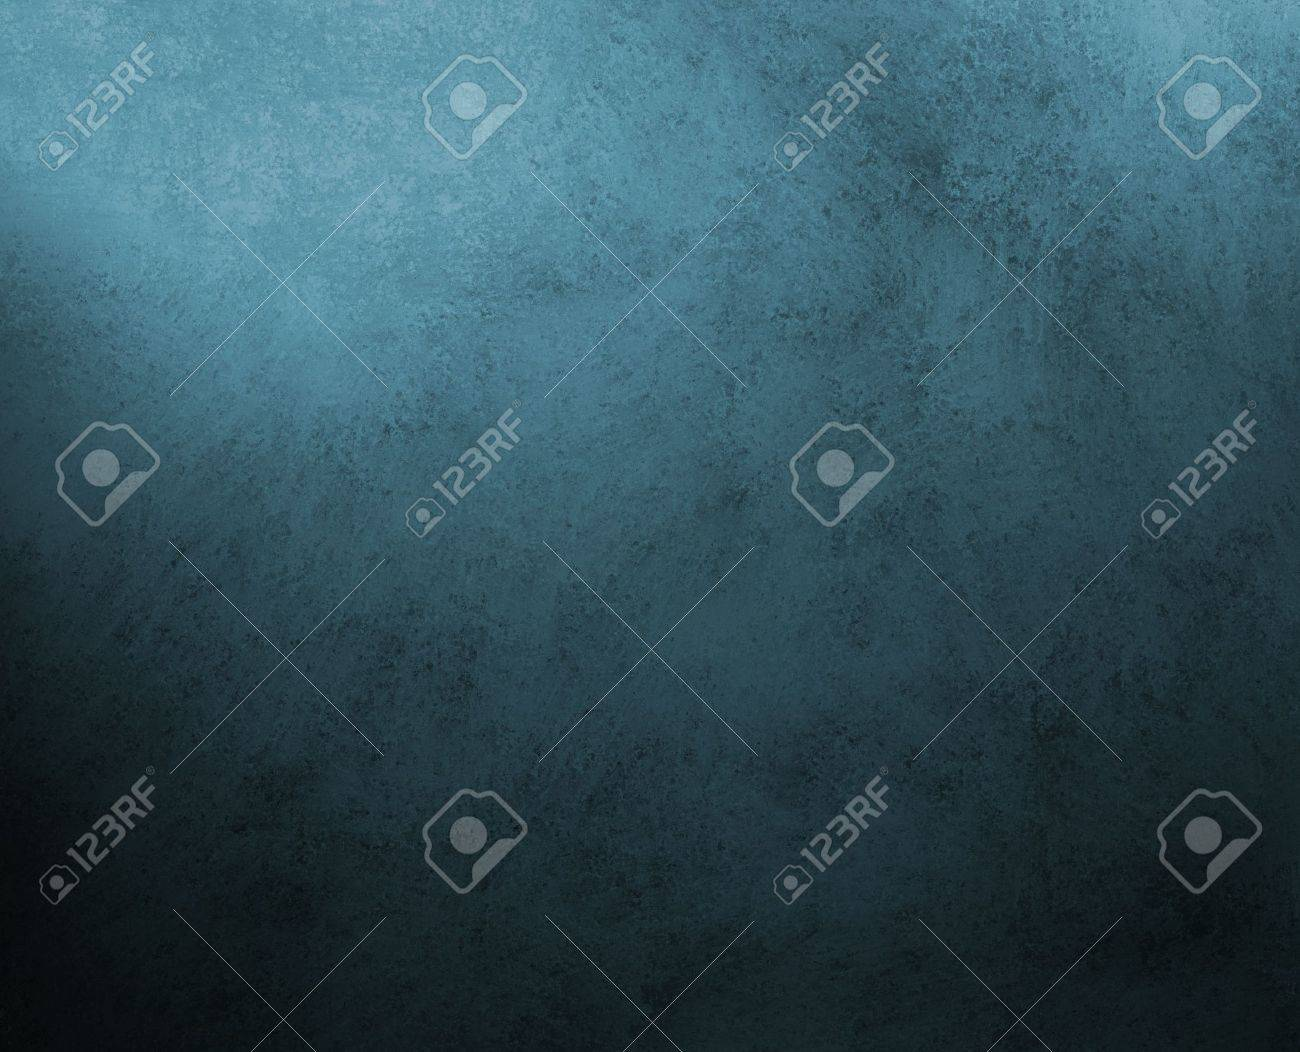 black blue background, dark colors, with vintage grunge background texture, abstract spots and stains around border, for elegant brochures, luxury ads, website templates, scrapbook Stock Photo - 14674419